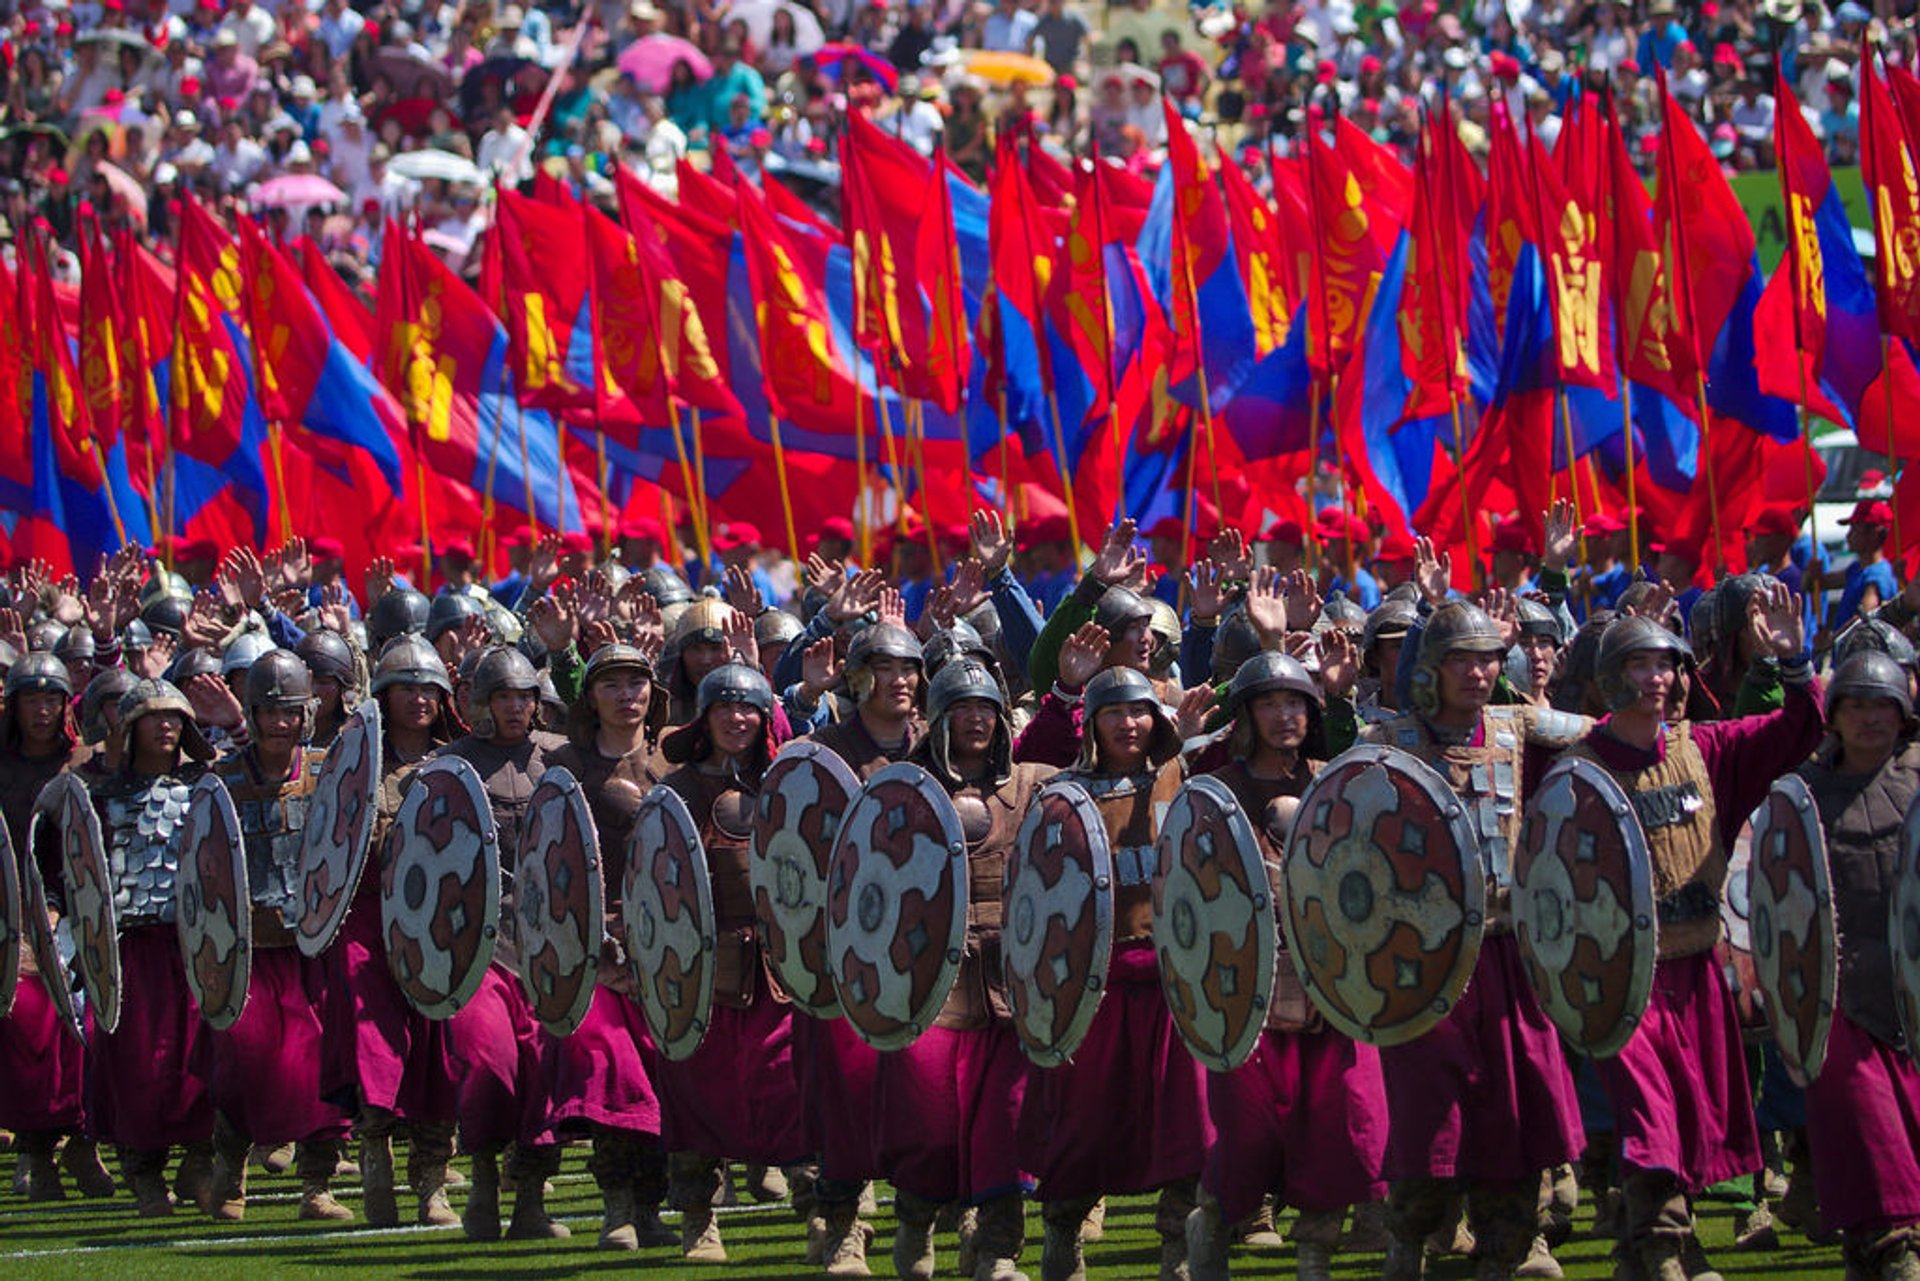 Naadam Festival in Mongolia 2020 - Best Time